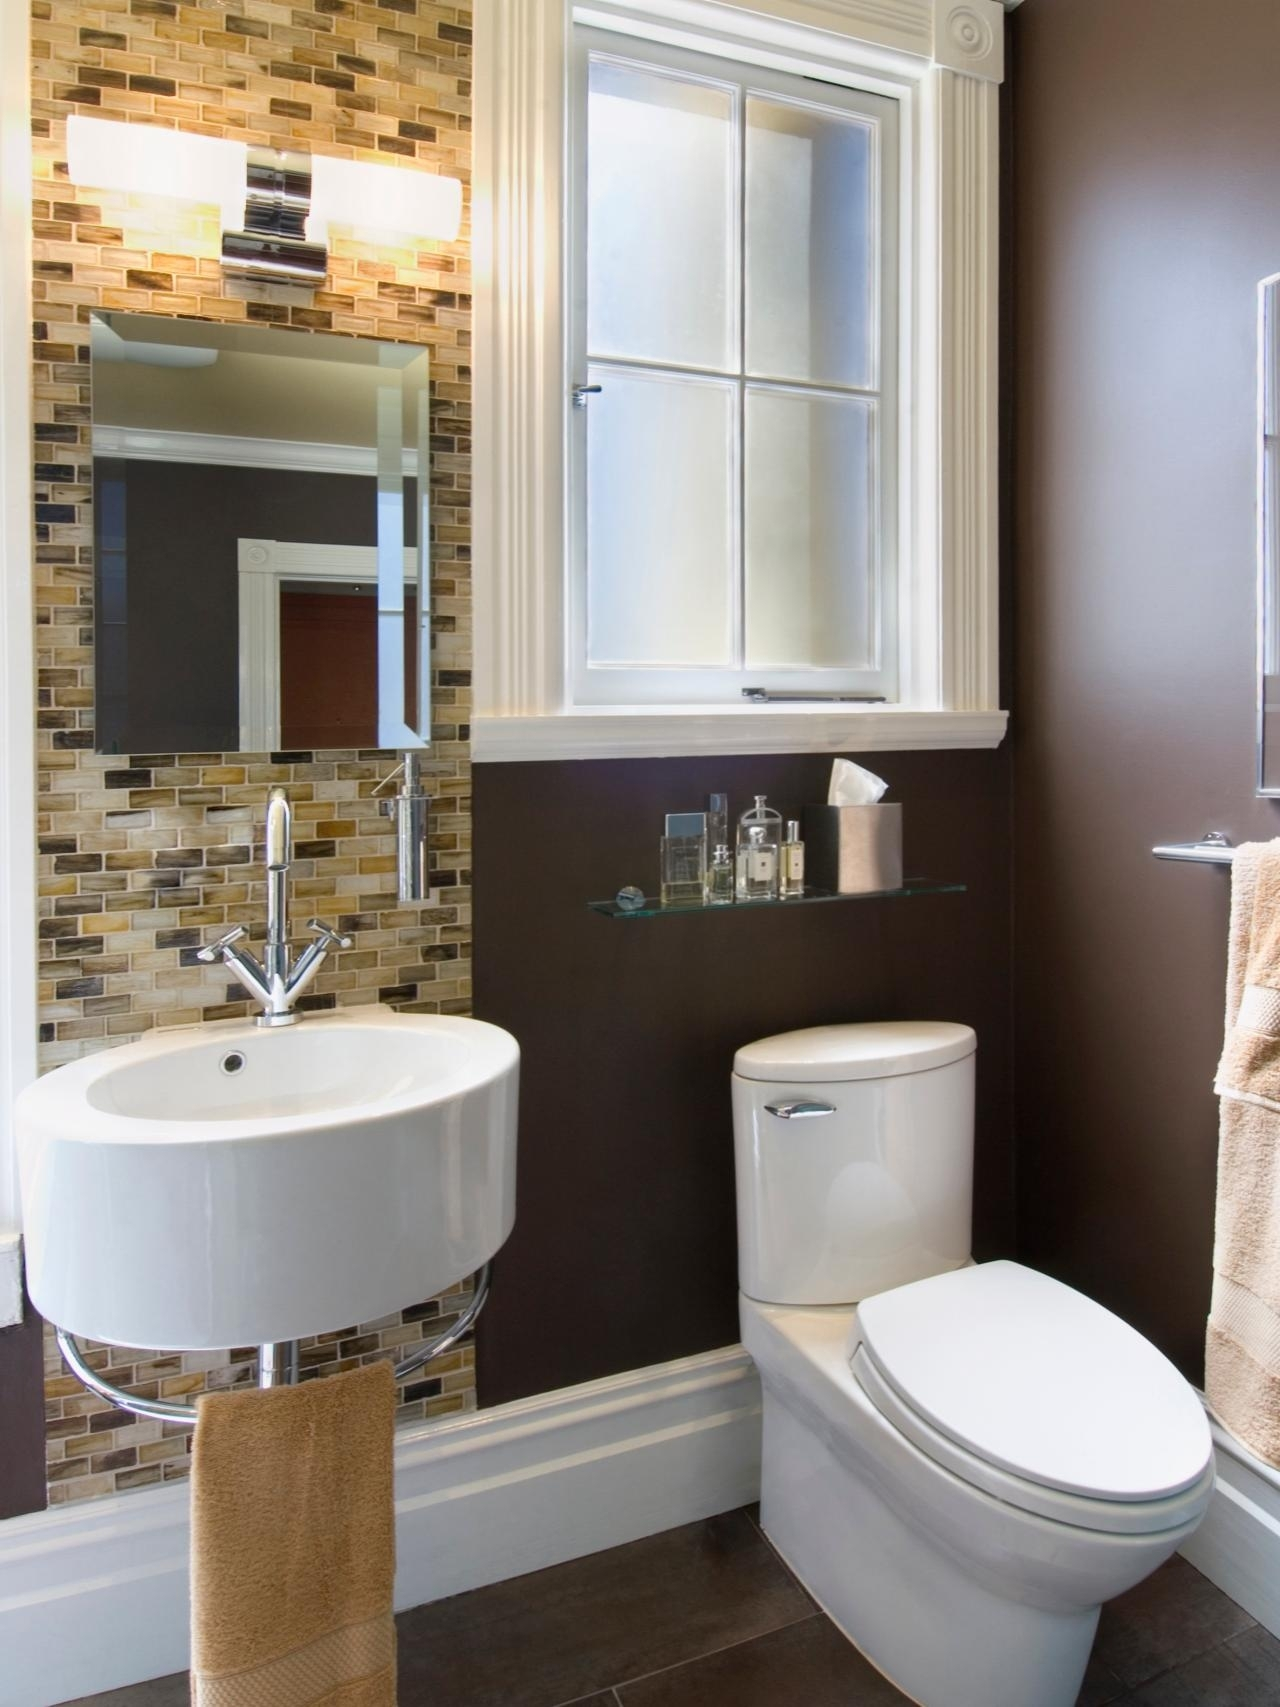 10 Fantastic Cheap Bathroom Remodel Ideas For Small Bathrooms %name 2021